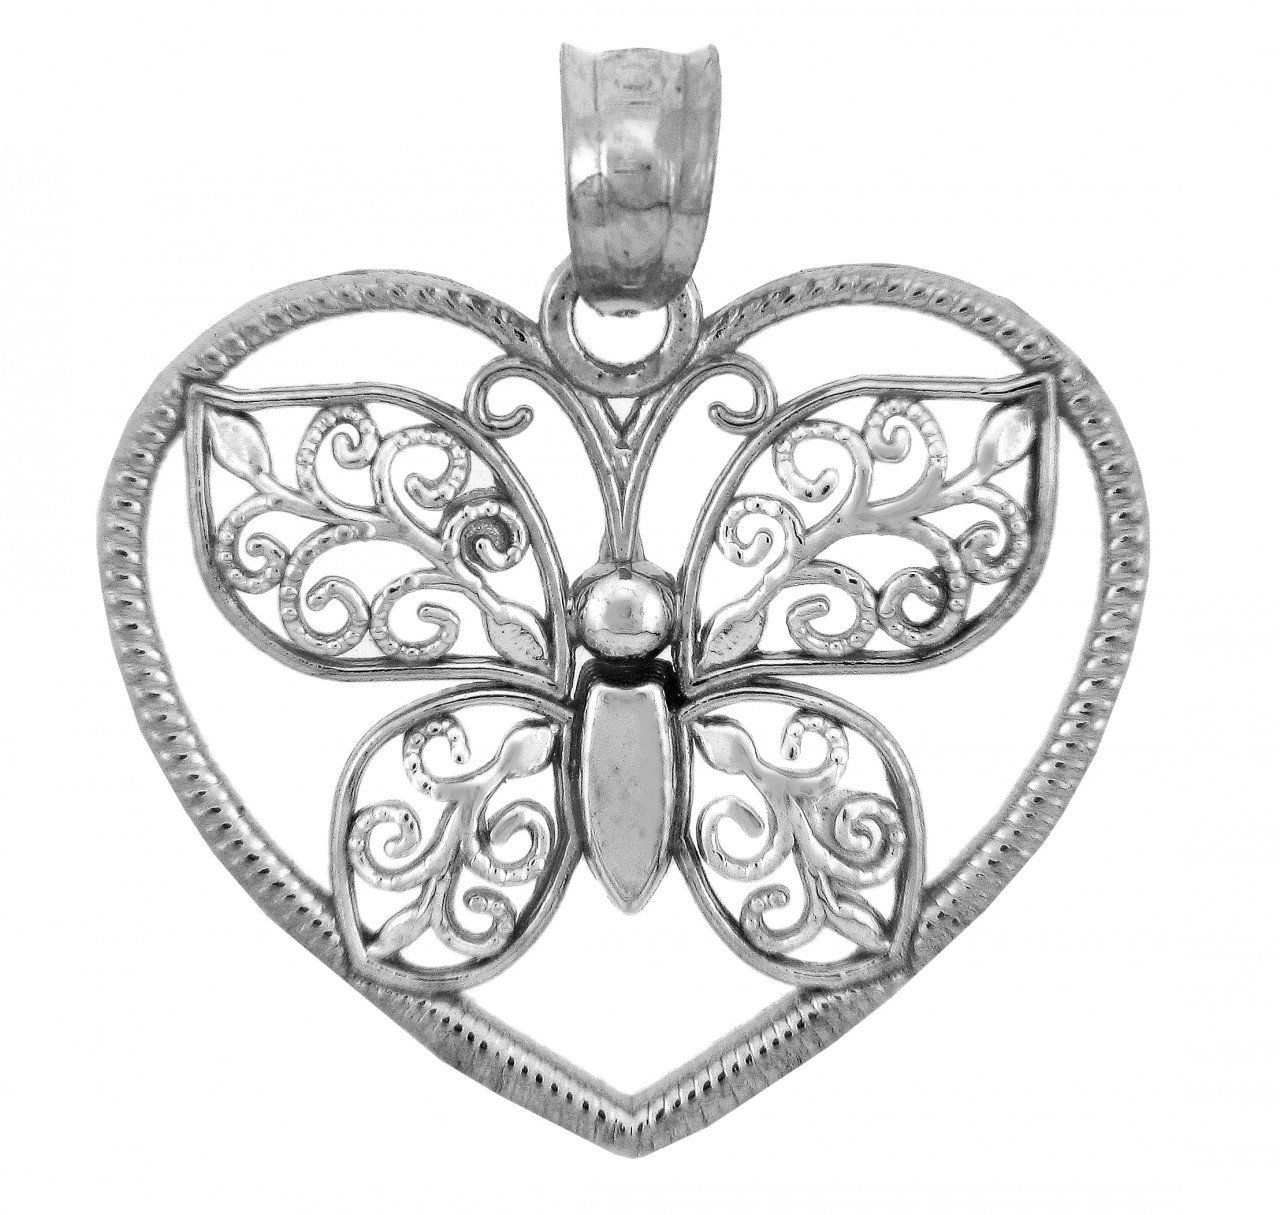 10k White Gold Butterfly in a Heart Pendant. 10K White Gold Butterfly Pendant. Crafted with high quality gold. free gift box with every order. Made in the USA. shipped within 24 hours by the manufacturer to the costumers directly.